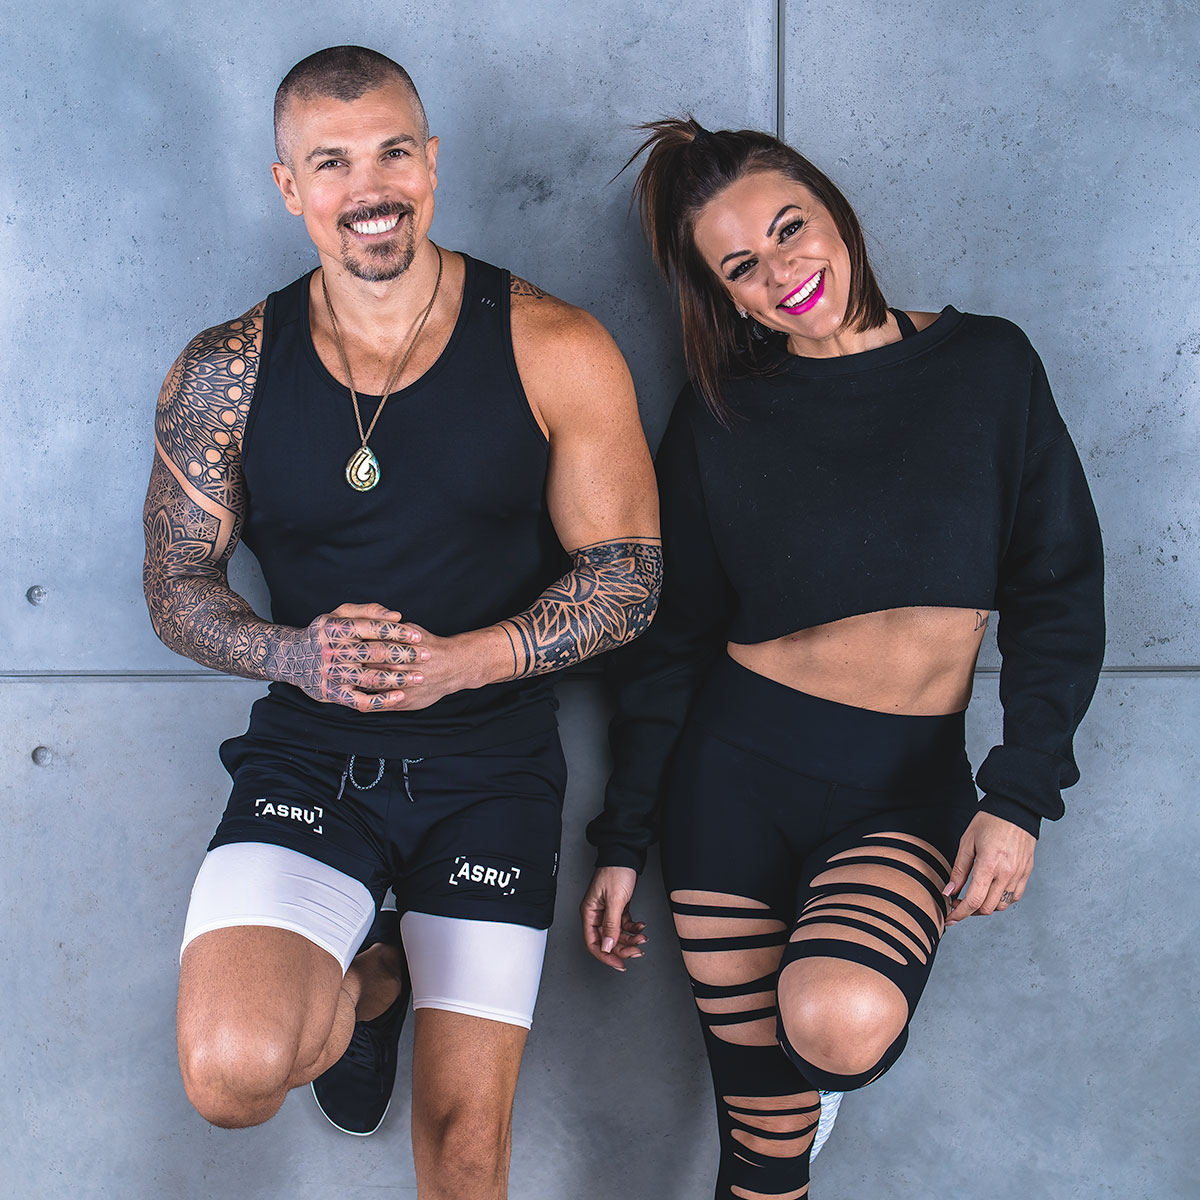 Darren Natoni (left, wearing a black tank top revealing sacred geometry tattoo sleeves) standing next to wife, Danielle Natoni (right, wearing a black crop sweatshirt and tights with slits in the thighs), each leaning against a concrete wall and smiling with one foot resting up on the wall